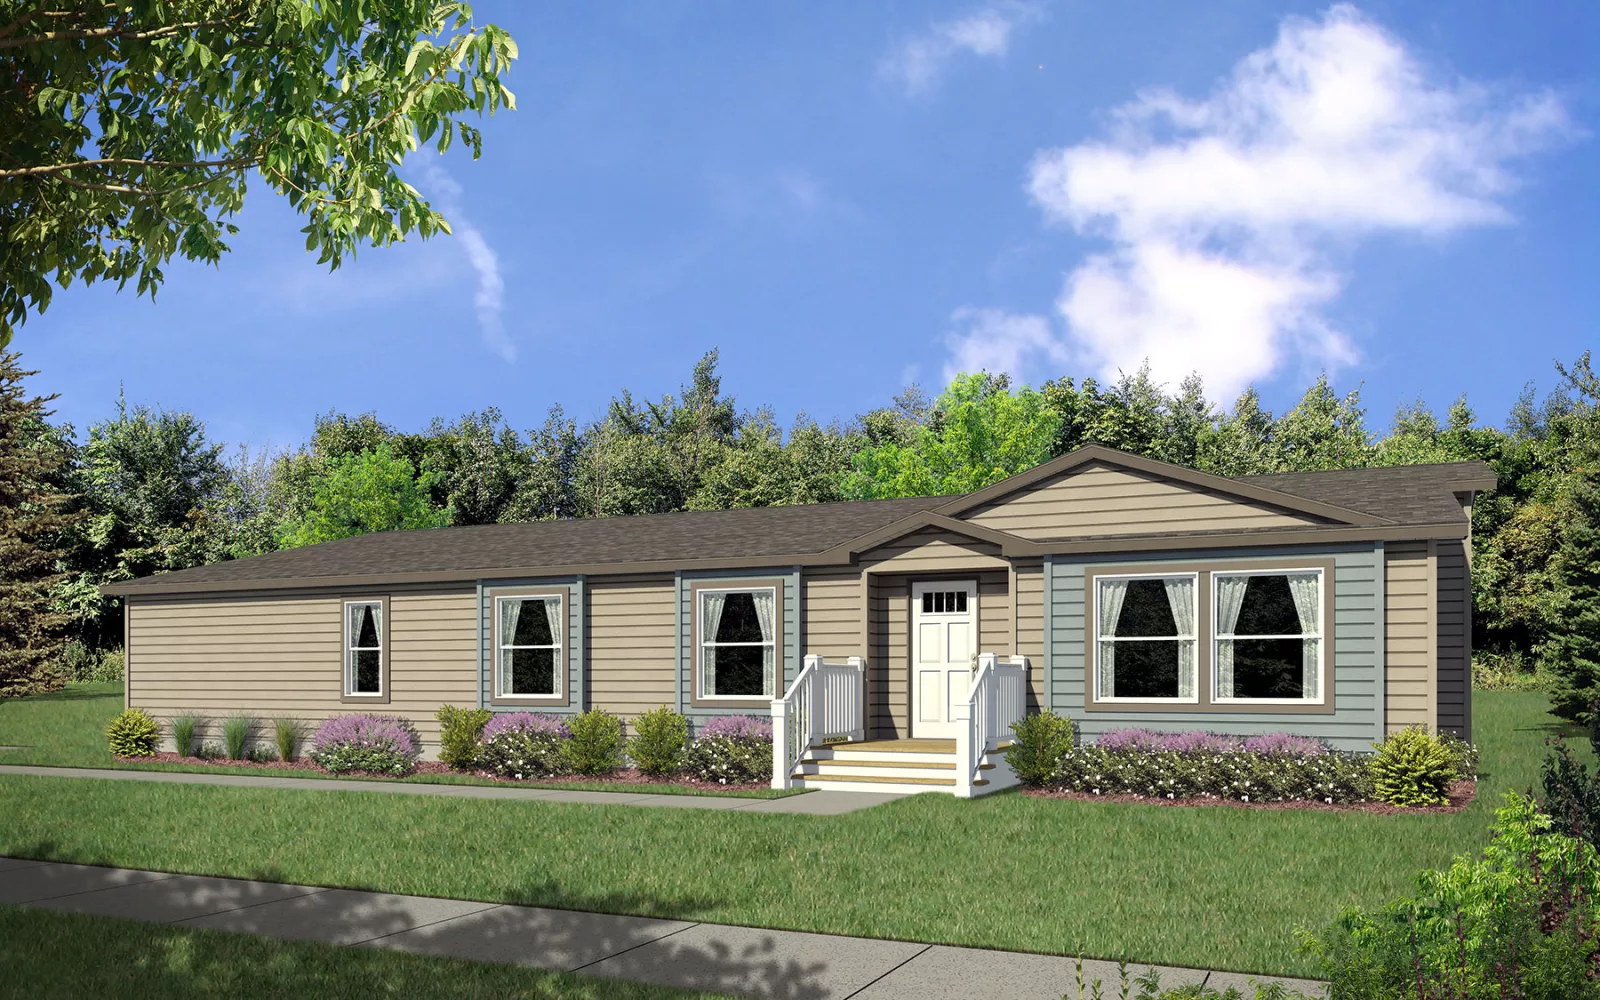 Image of the Champion Homes Avalanche 7683W exterior